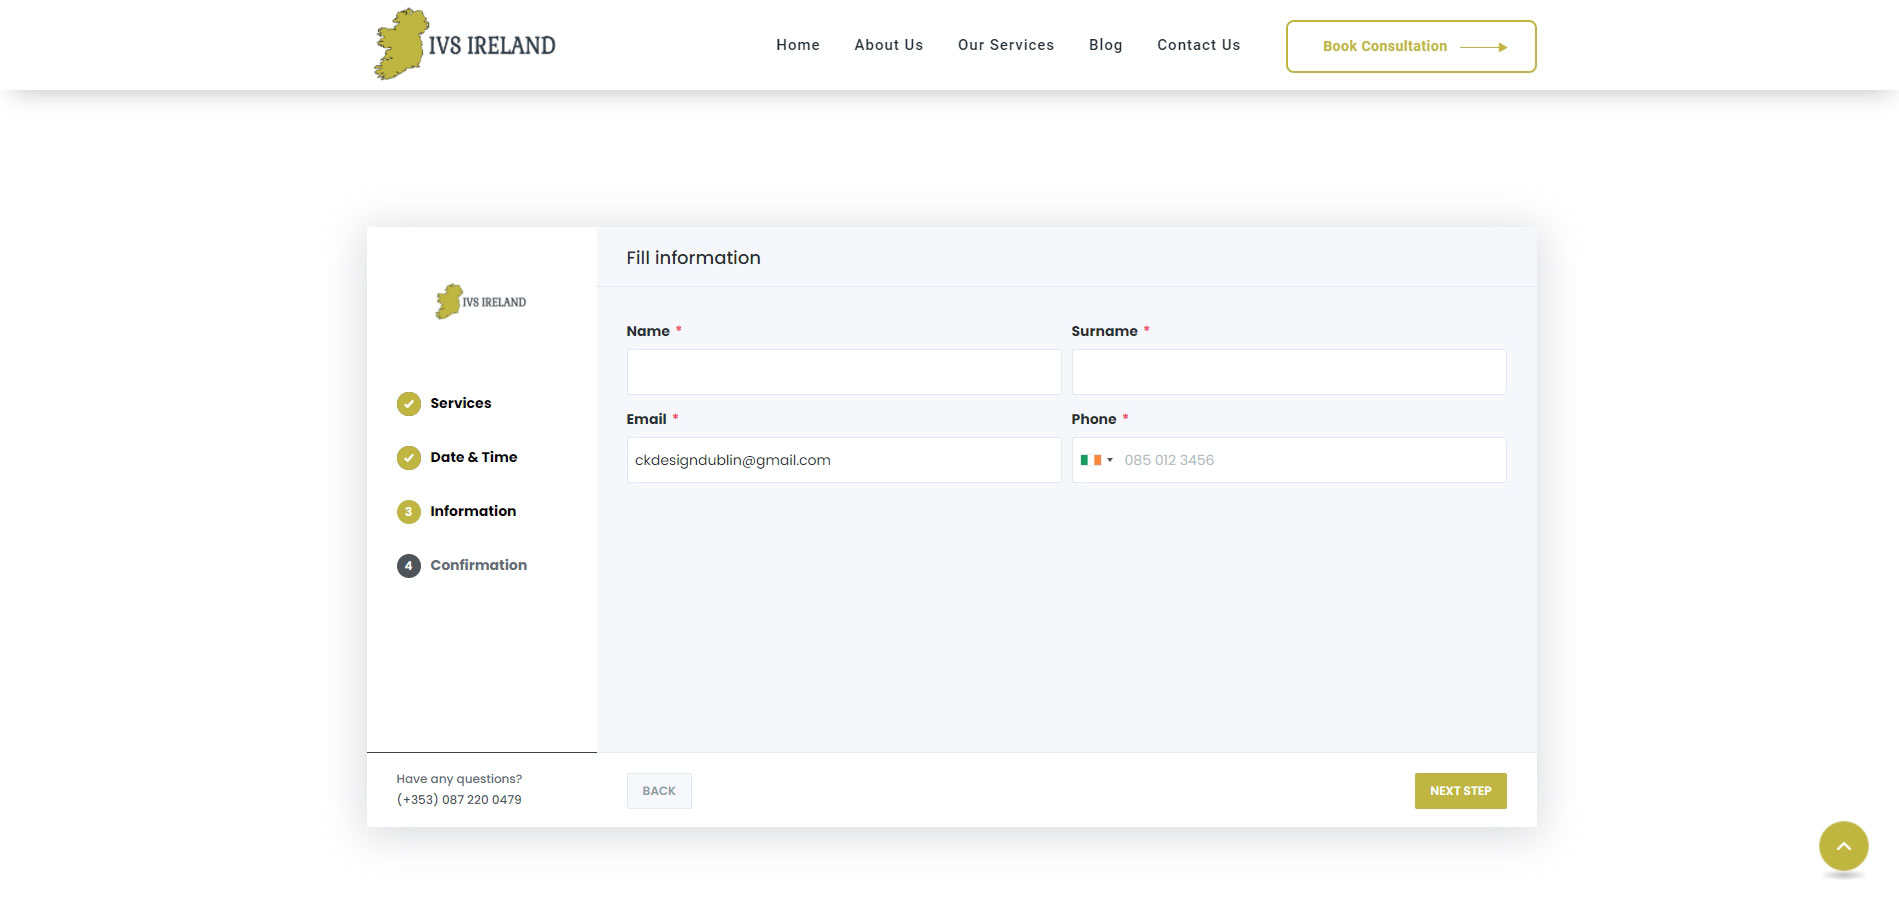 ivs ireland by ck website design - full screen shot of the ivs ireland Booking System step 2